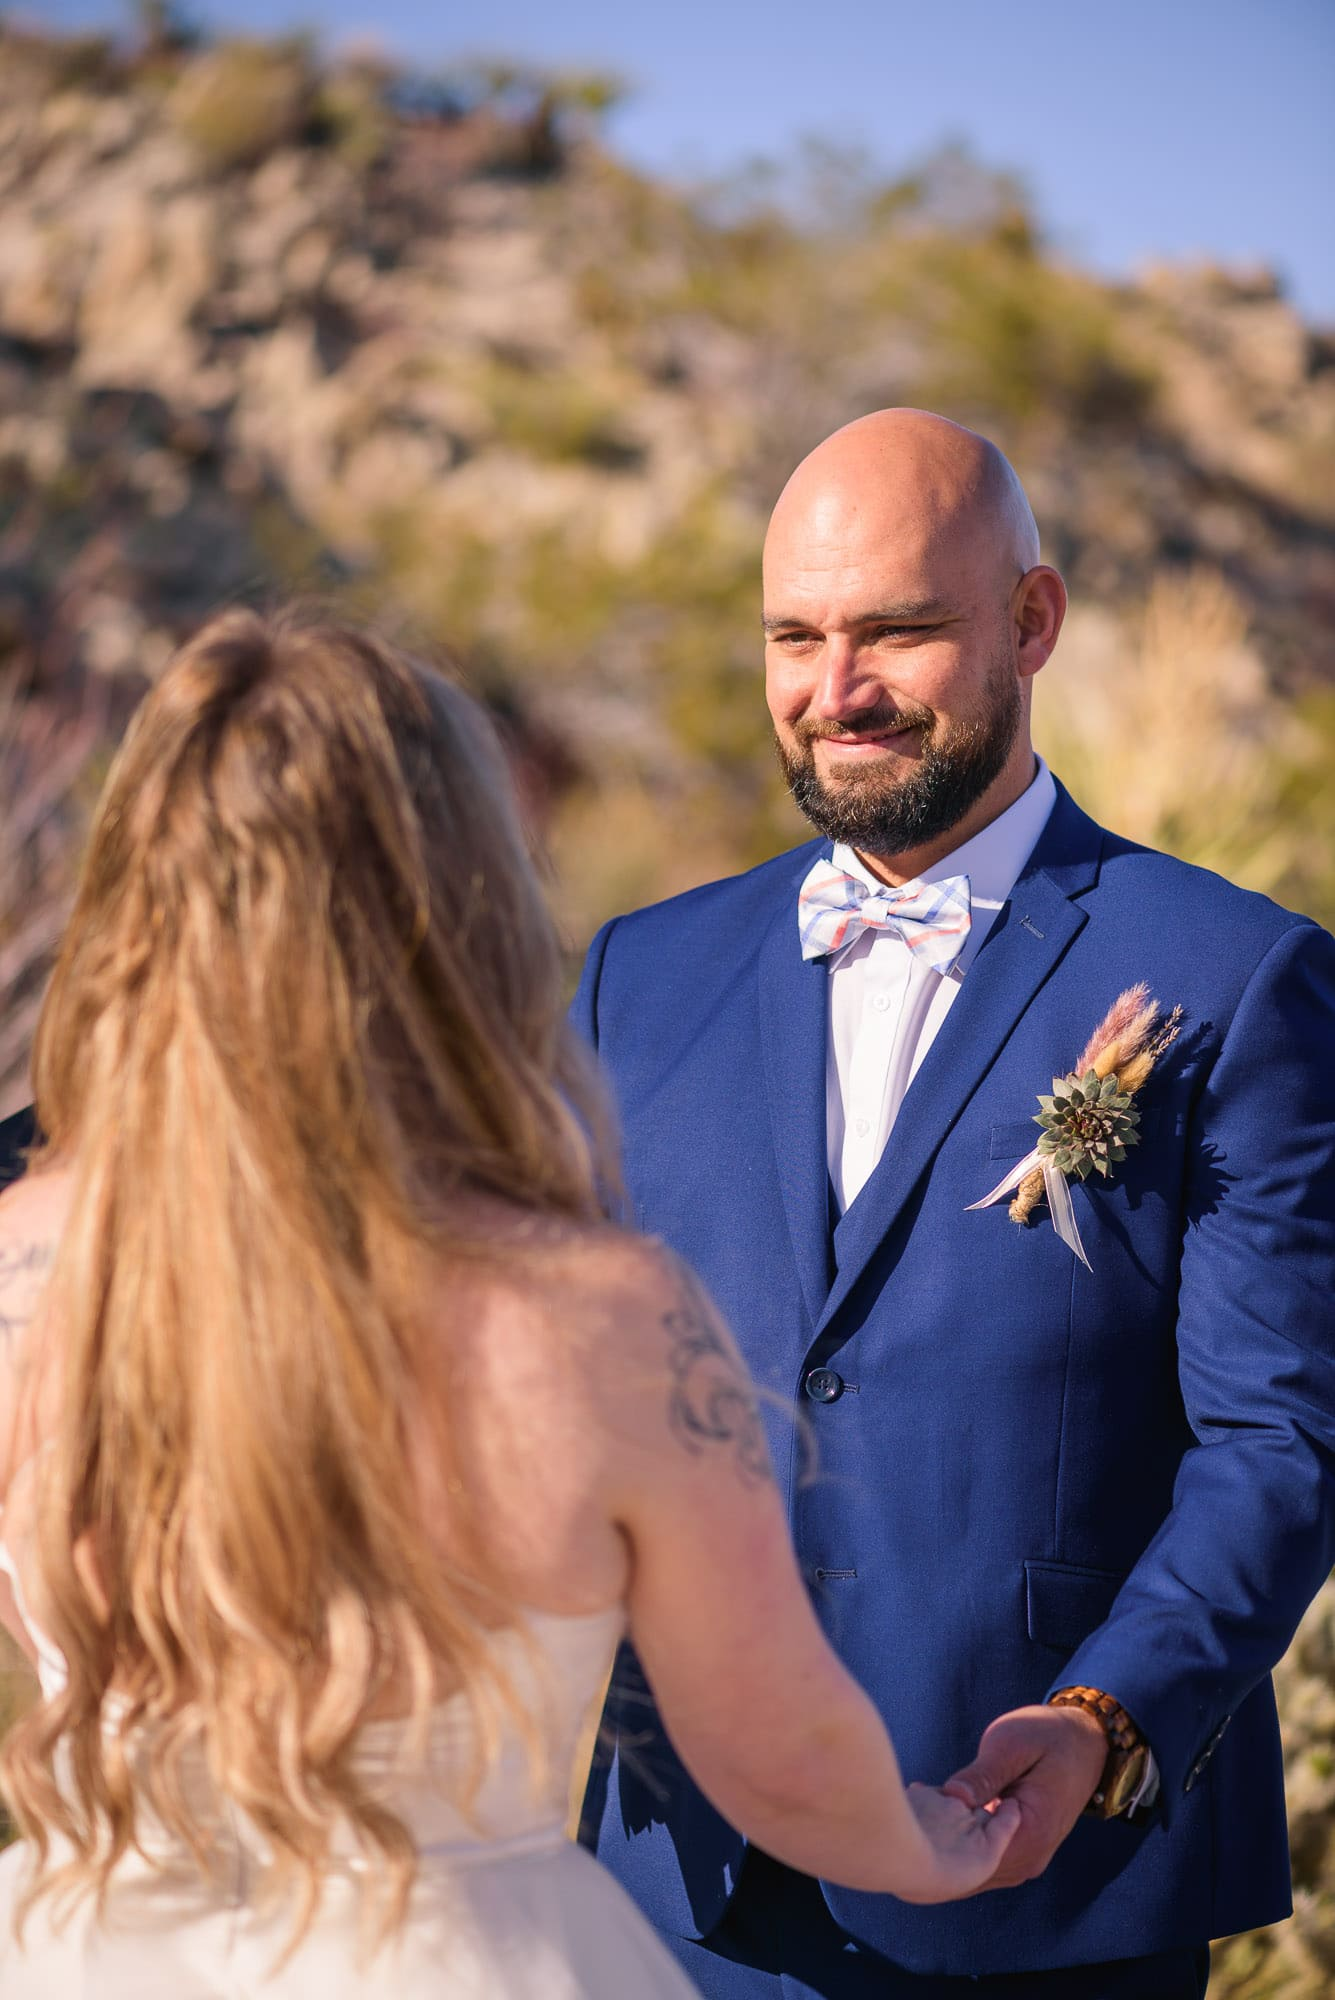 009_Alan_and_Heidi_Joshua_Tree_Spring_Elopement